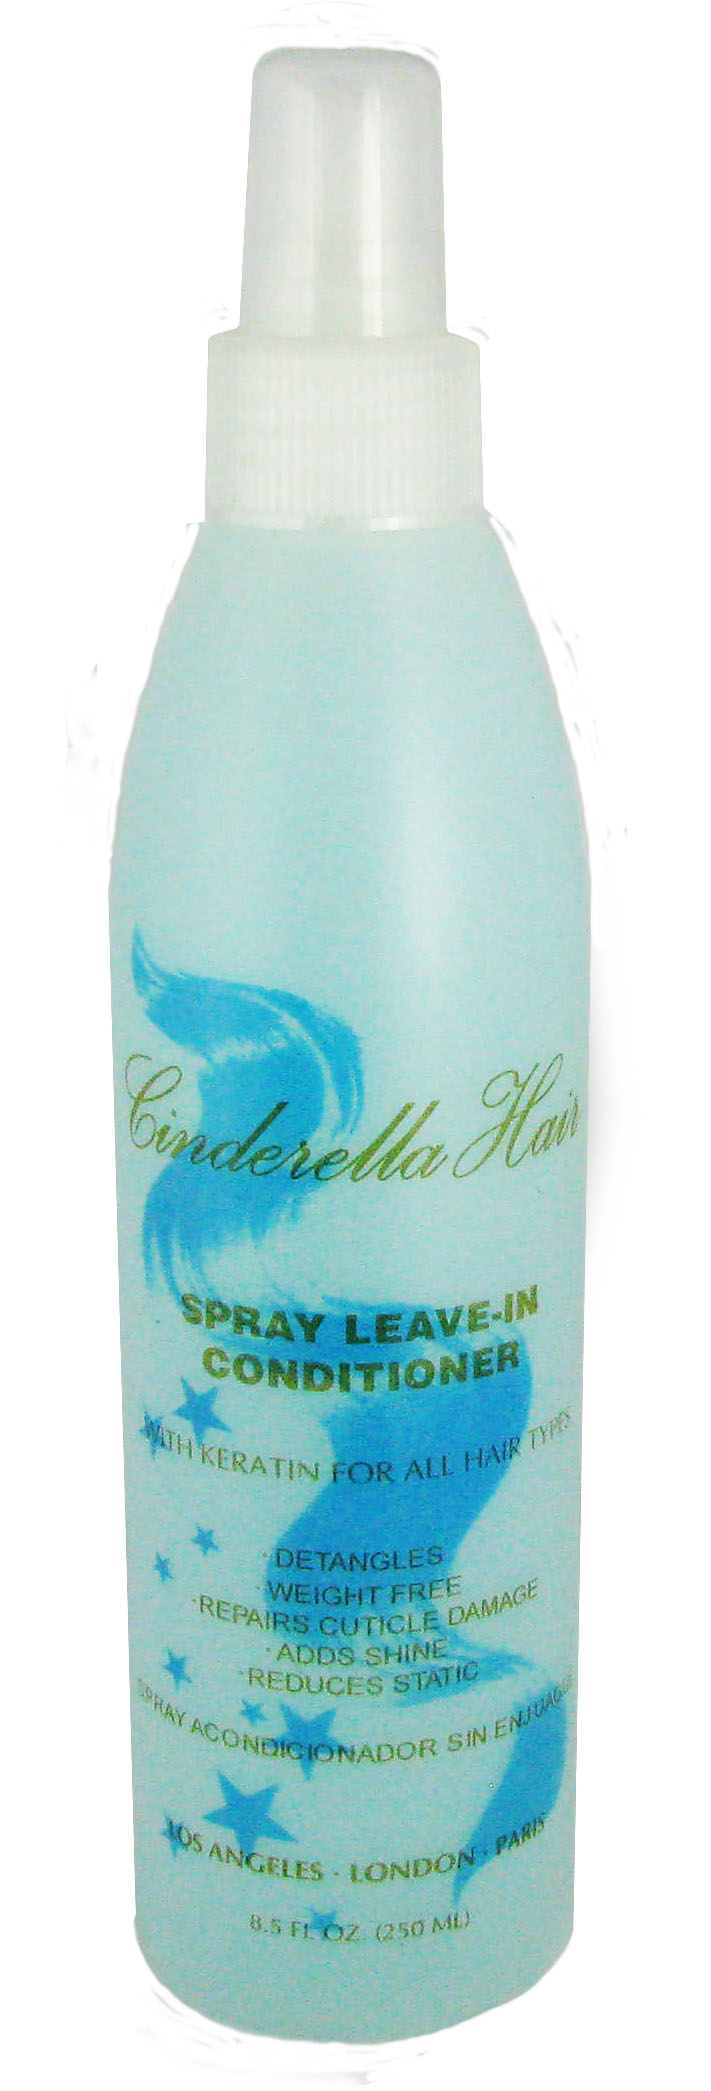 Spray Leave-In Conditioning Mist 8.5 Oz